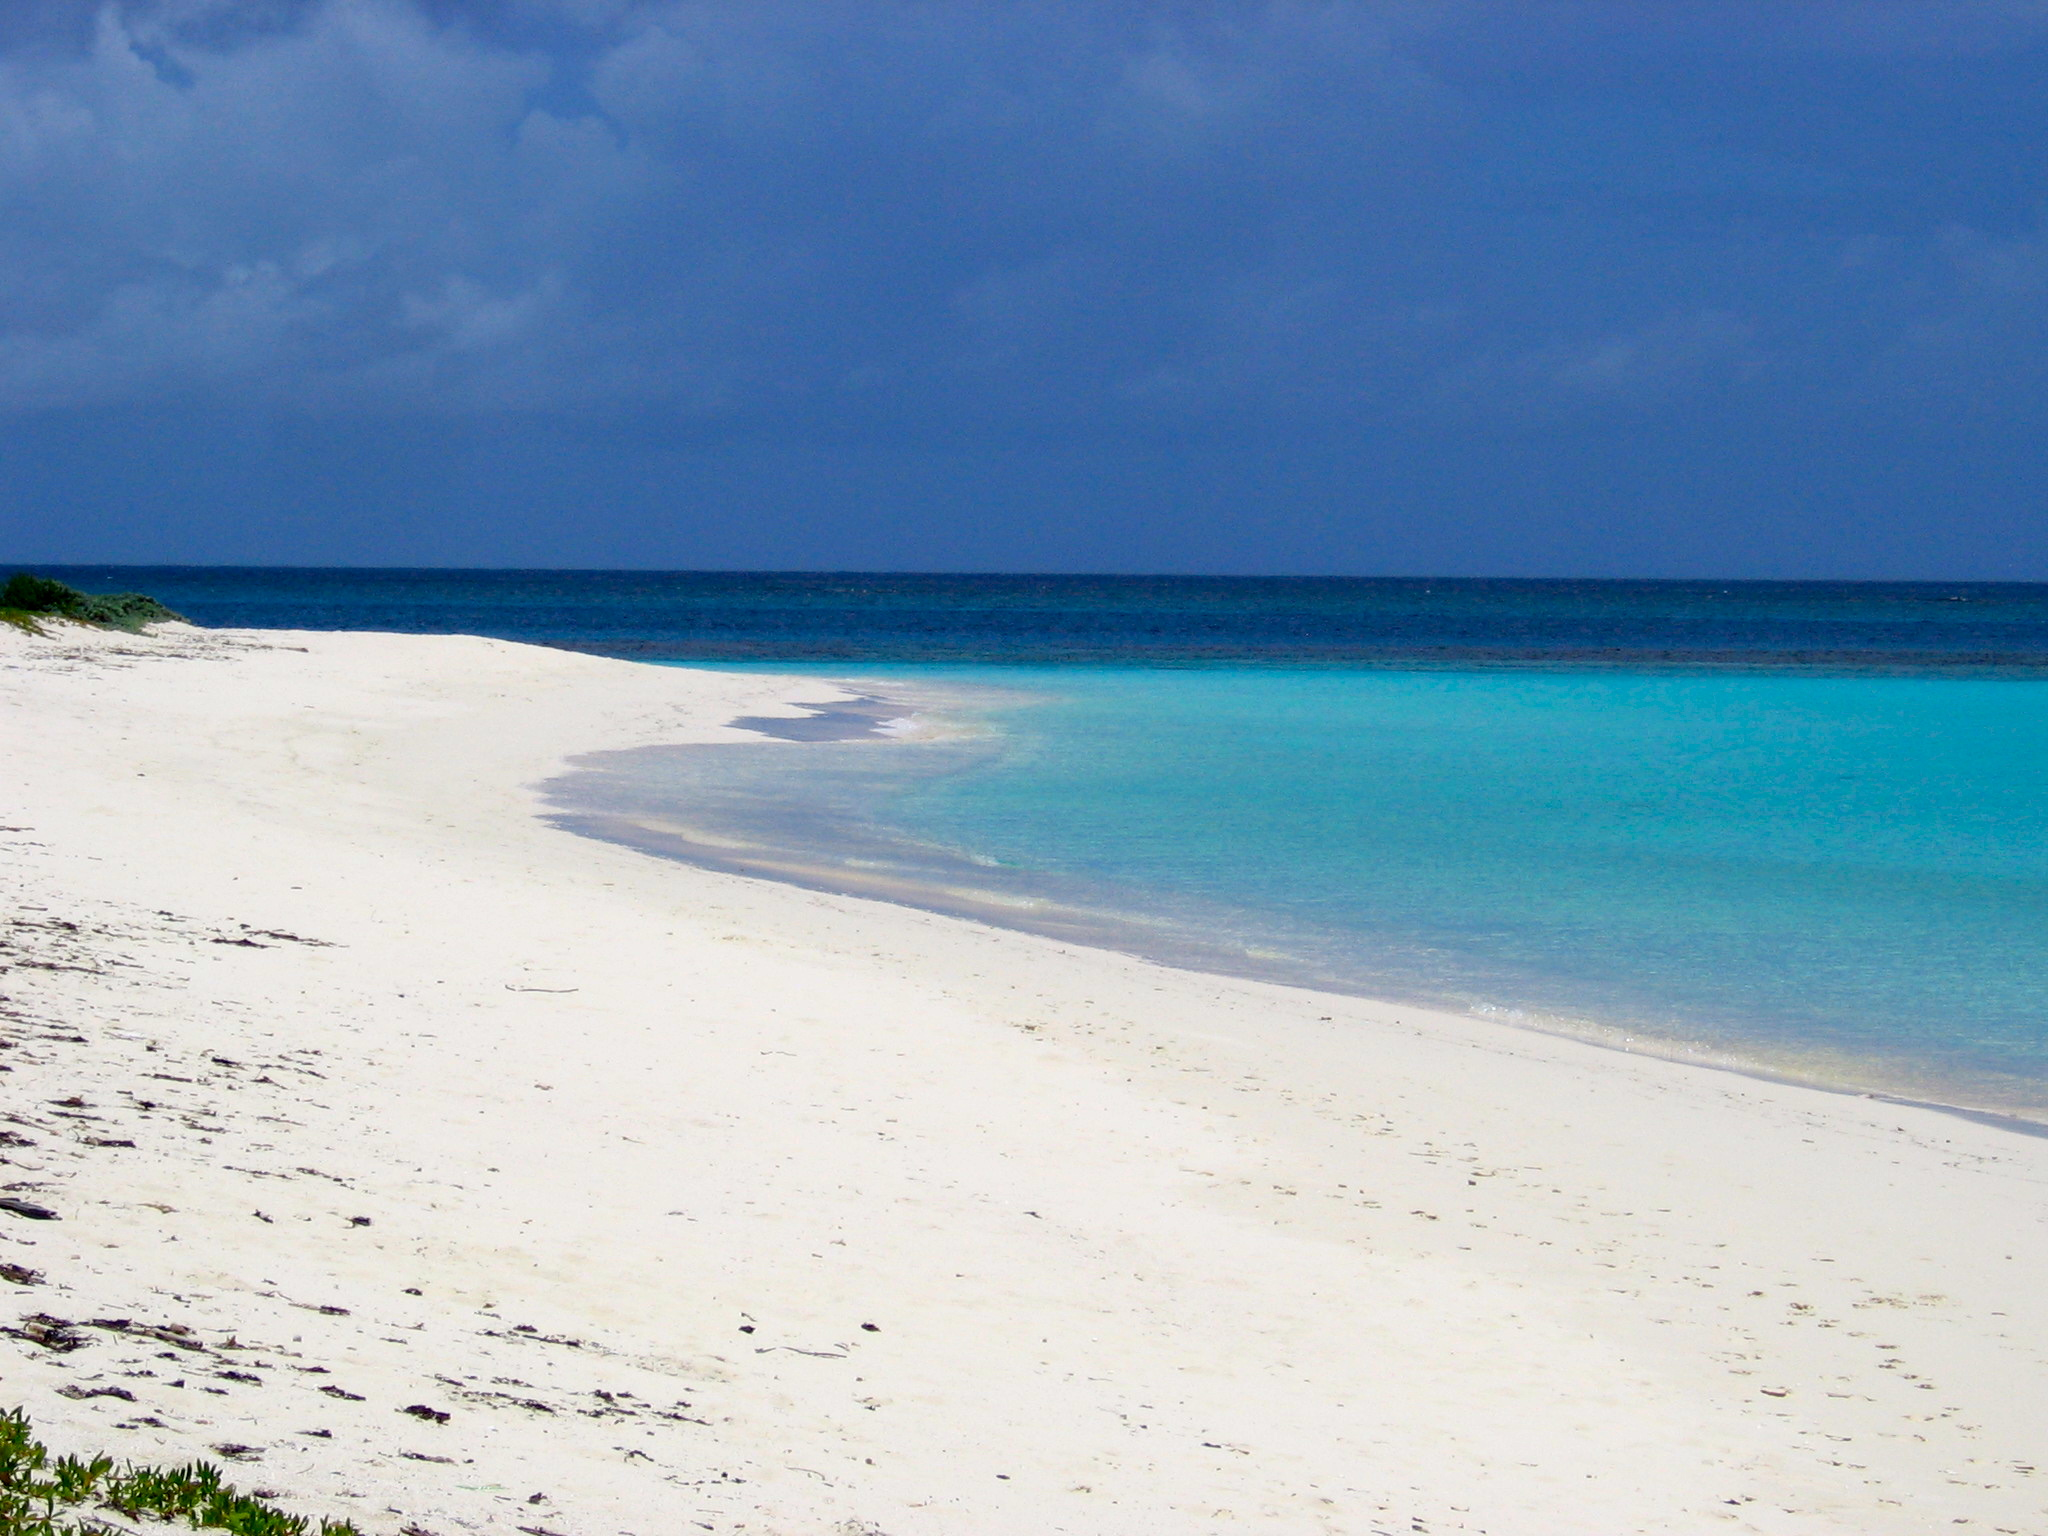 Deserted beach in Upper Shoal Bay, Anguilla.  Photo by Rebecca Garland.